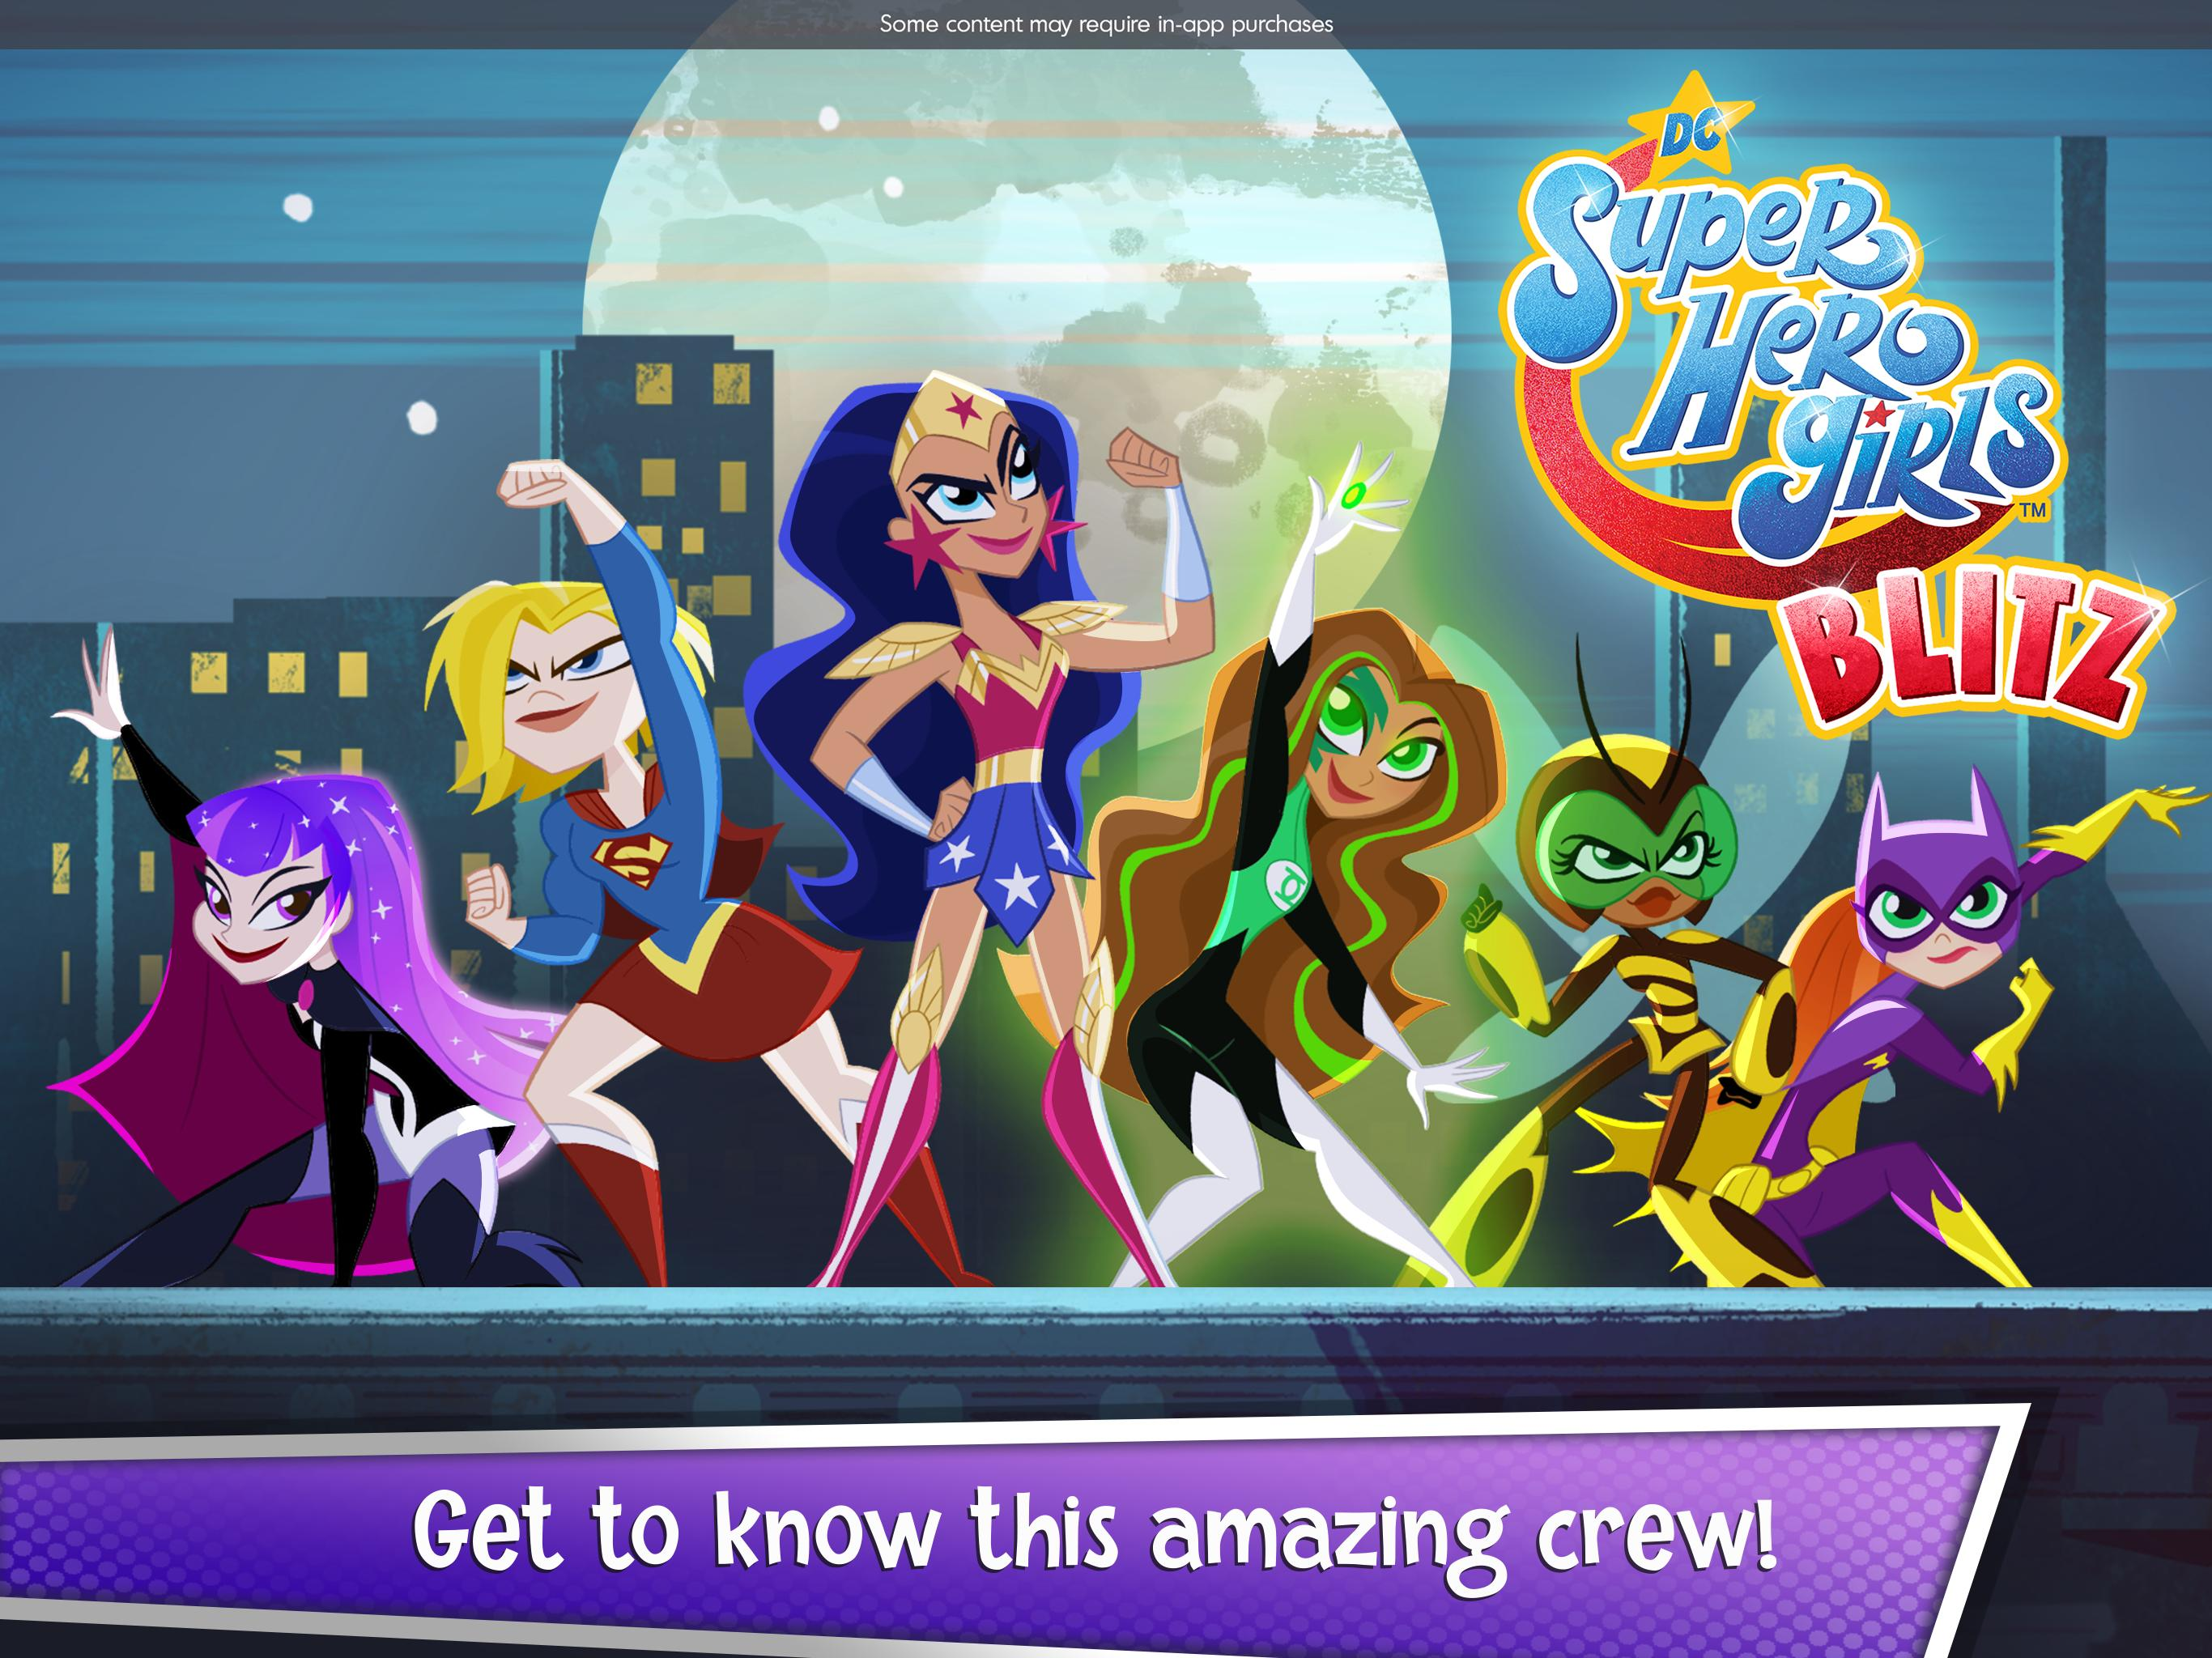 DC Super Hero Girls Blitz for Android - APK Download